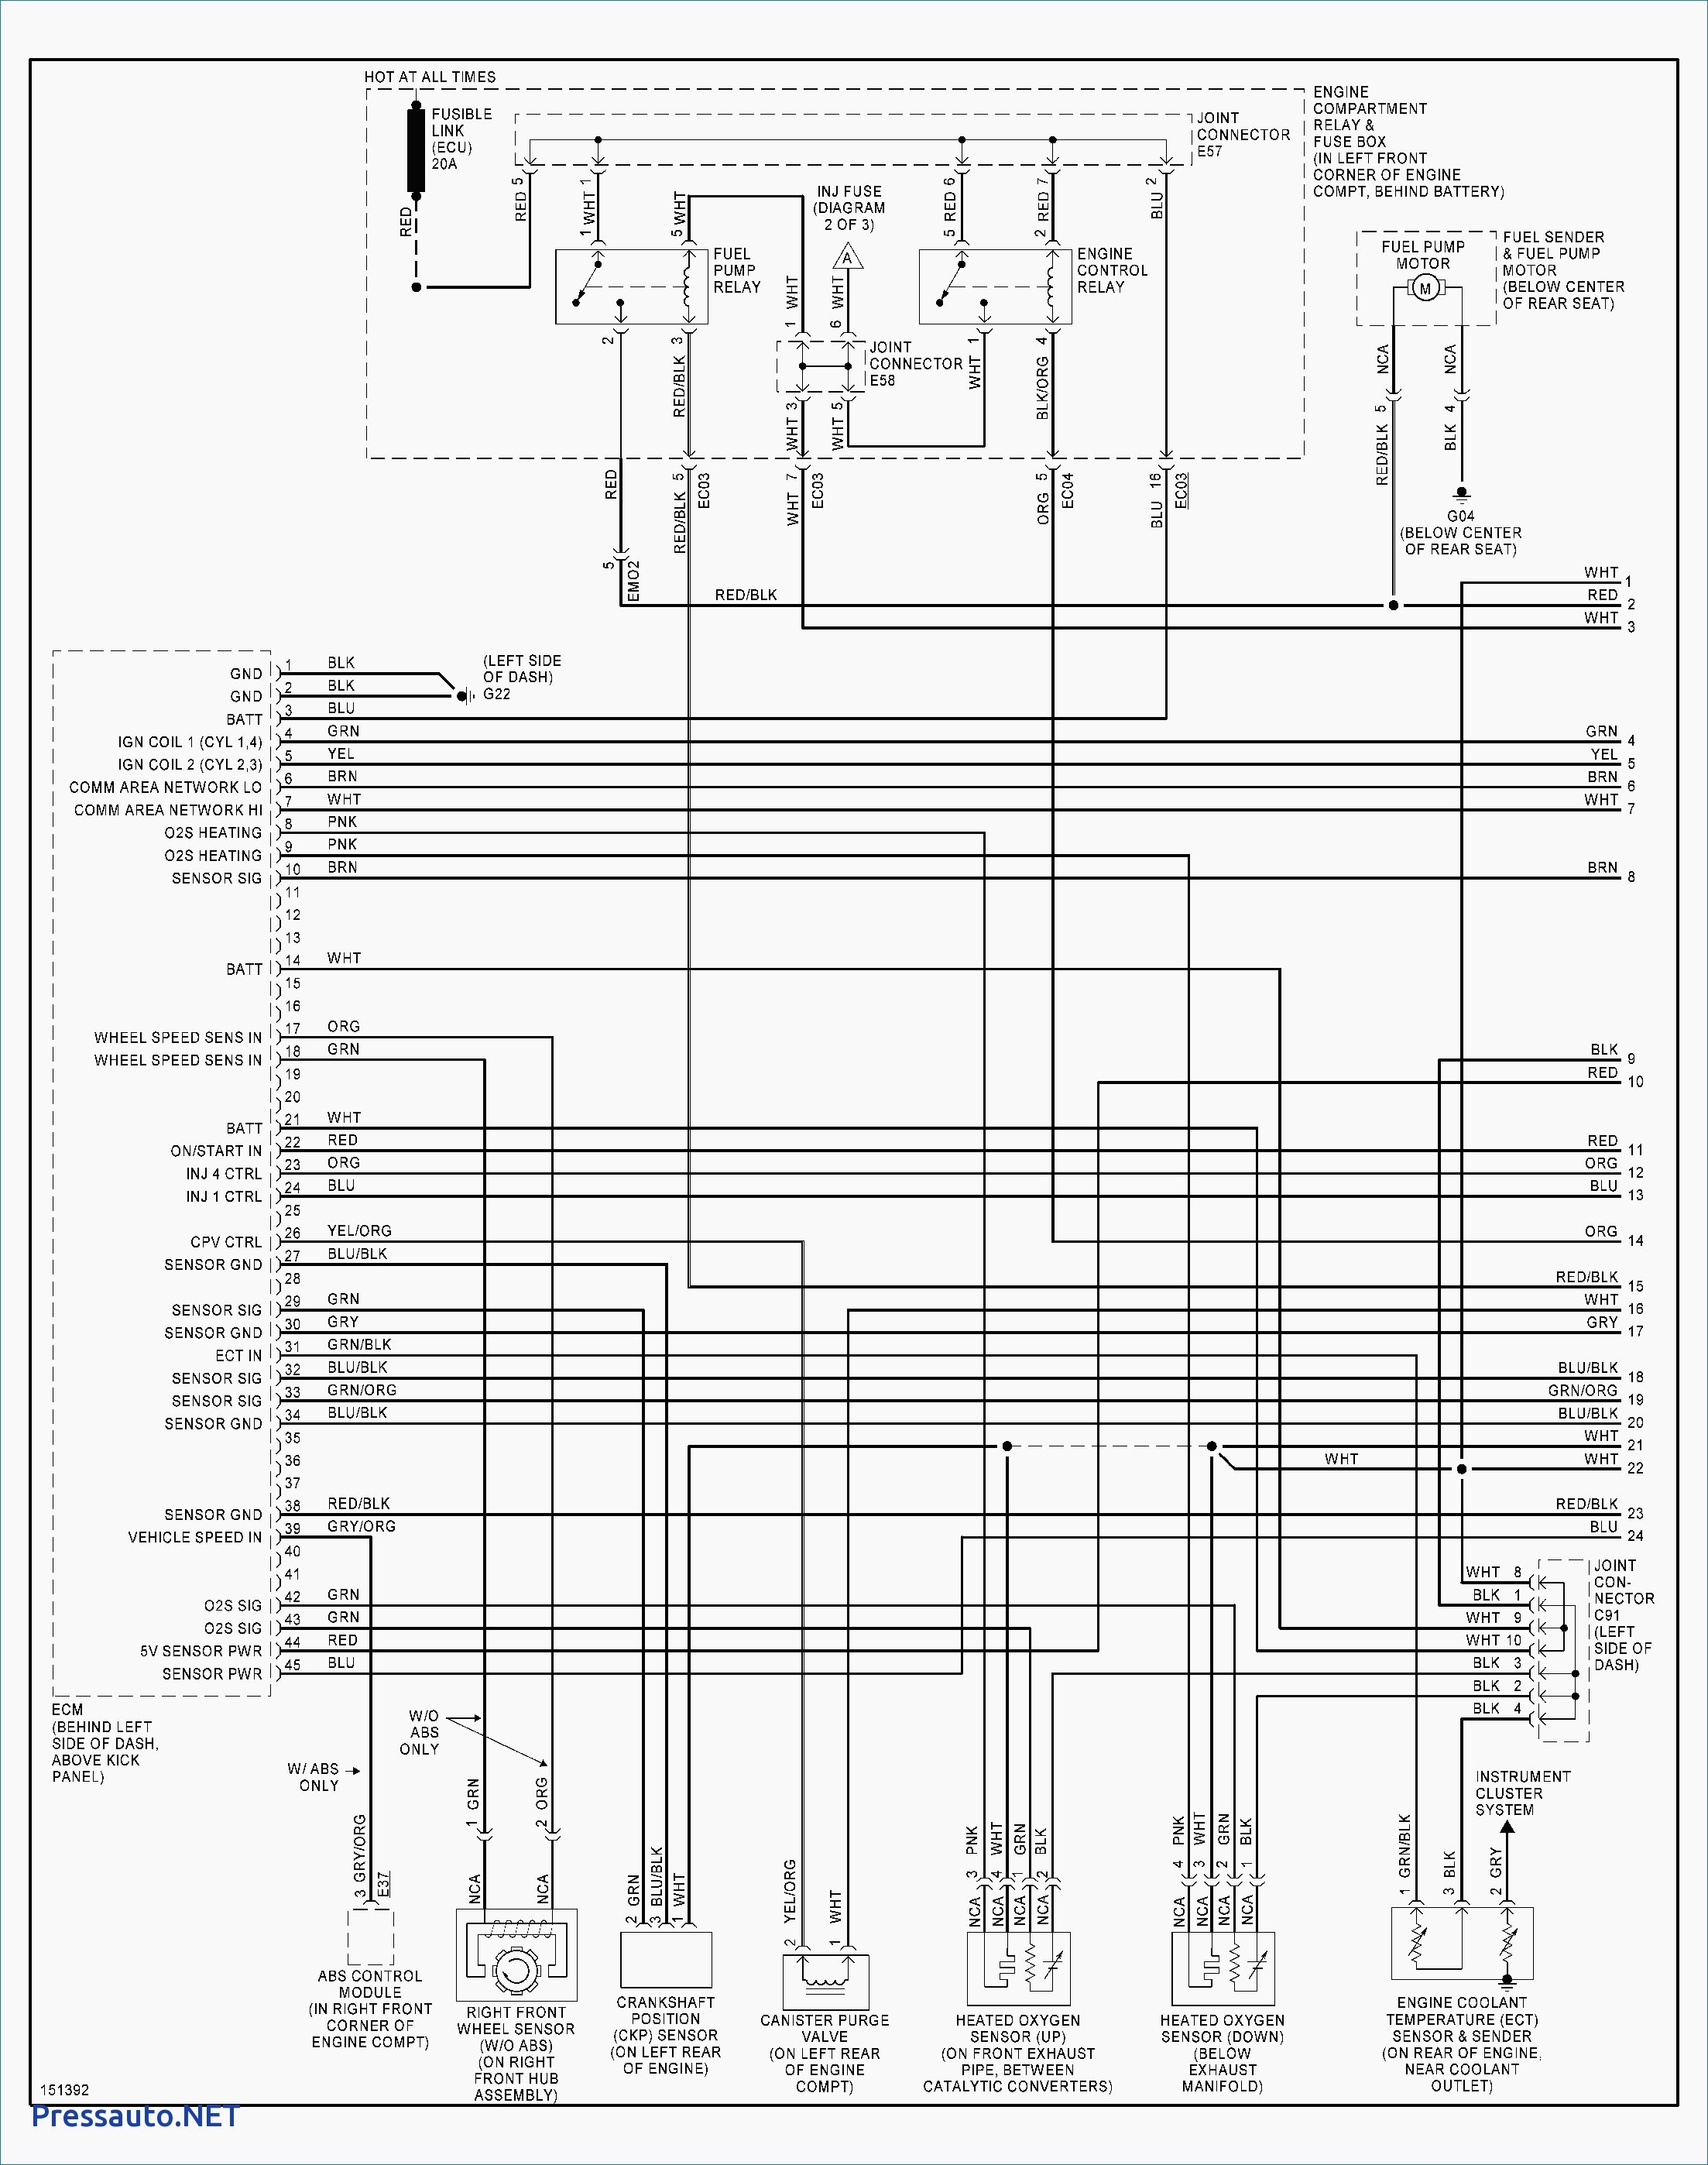 Hyundai Santa Fe Wiring Diagram Pdf - Phillips Wiring Diagrams -  1994-chevys.ati-loro.jeanjaures37.frWiring Diagram Resource